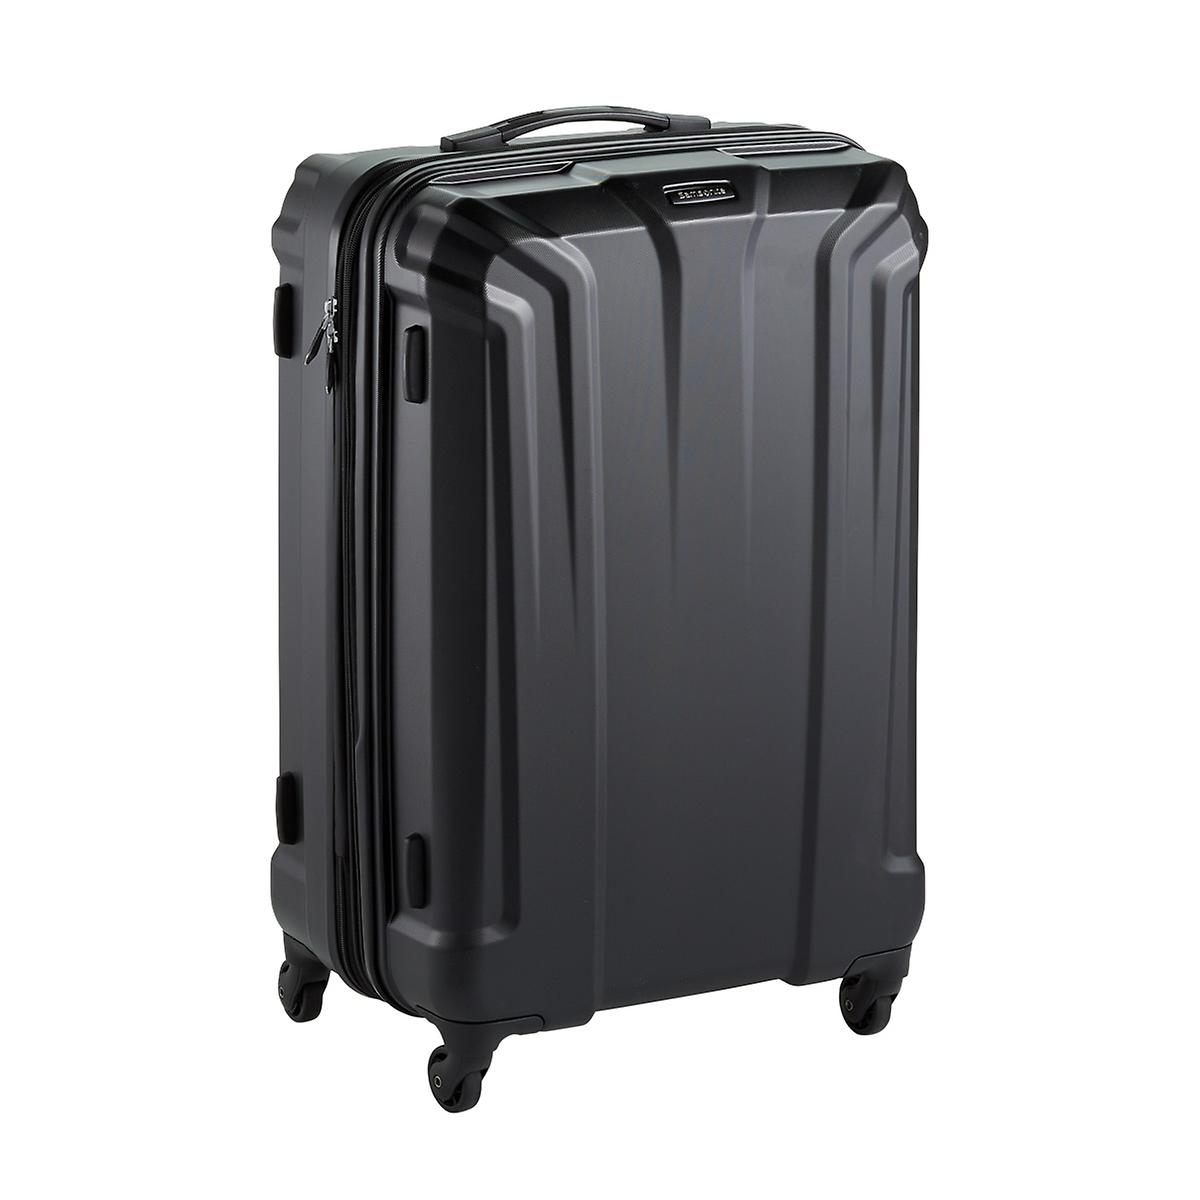 Samsonite 25